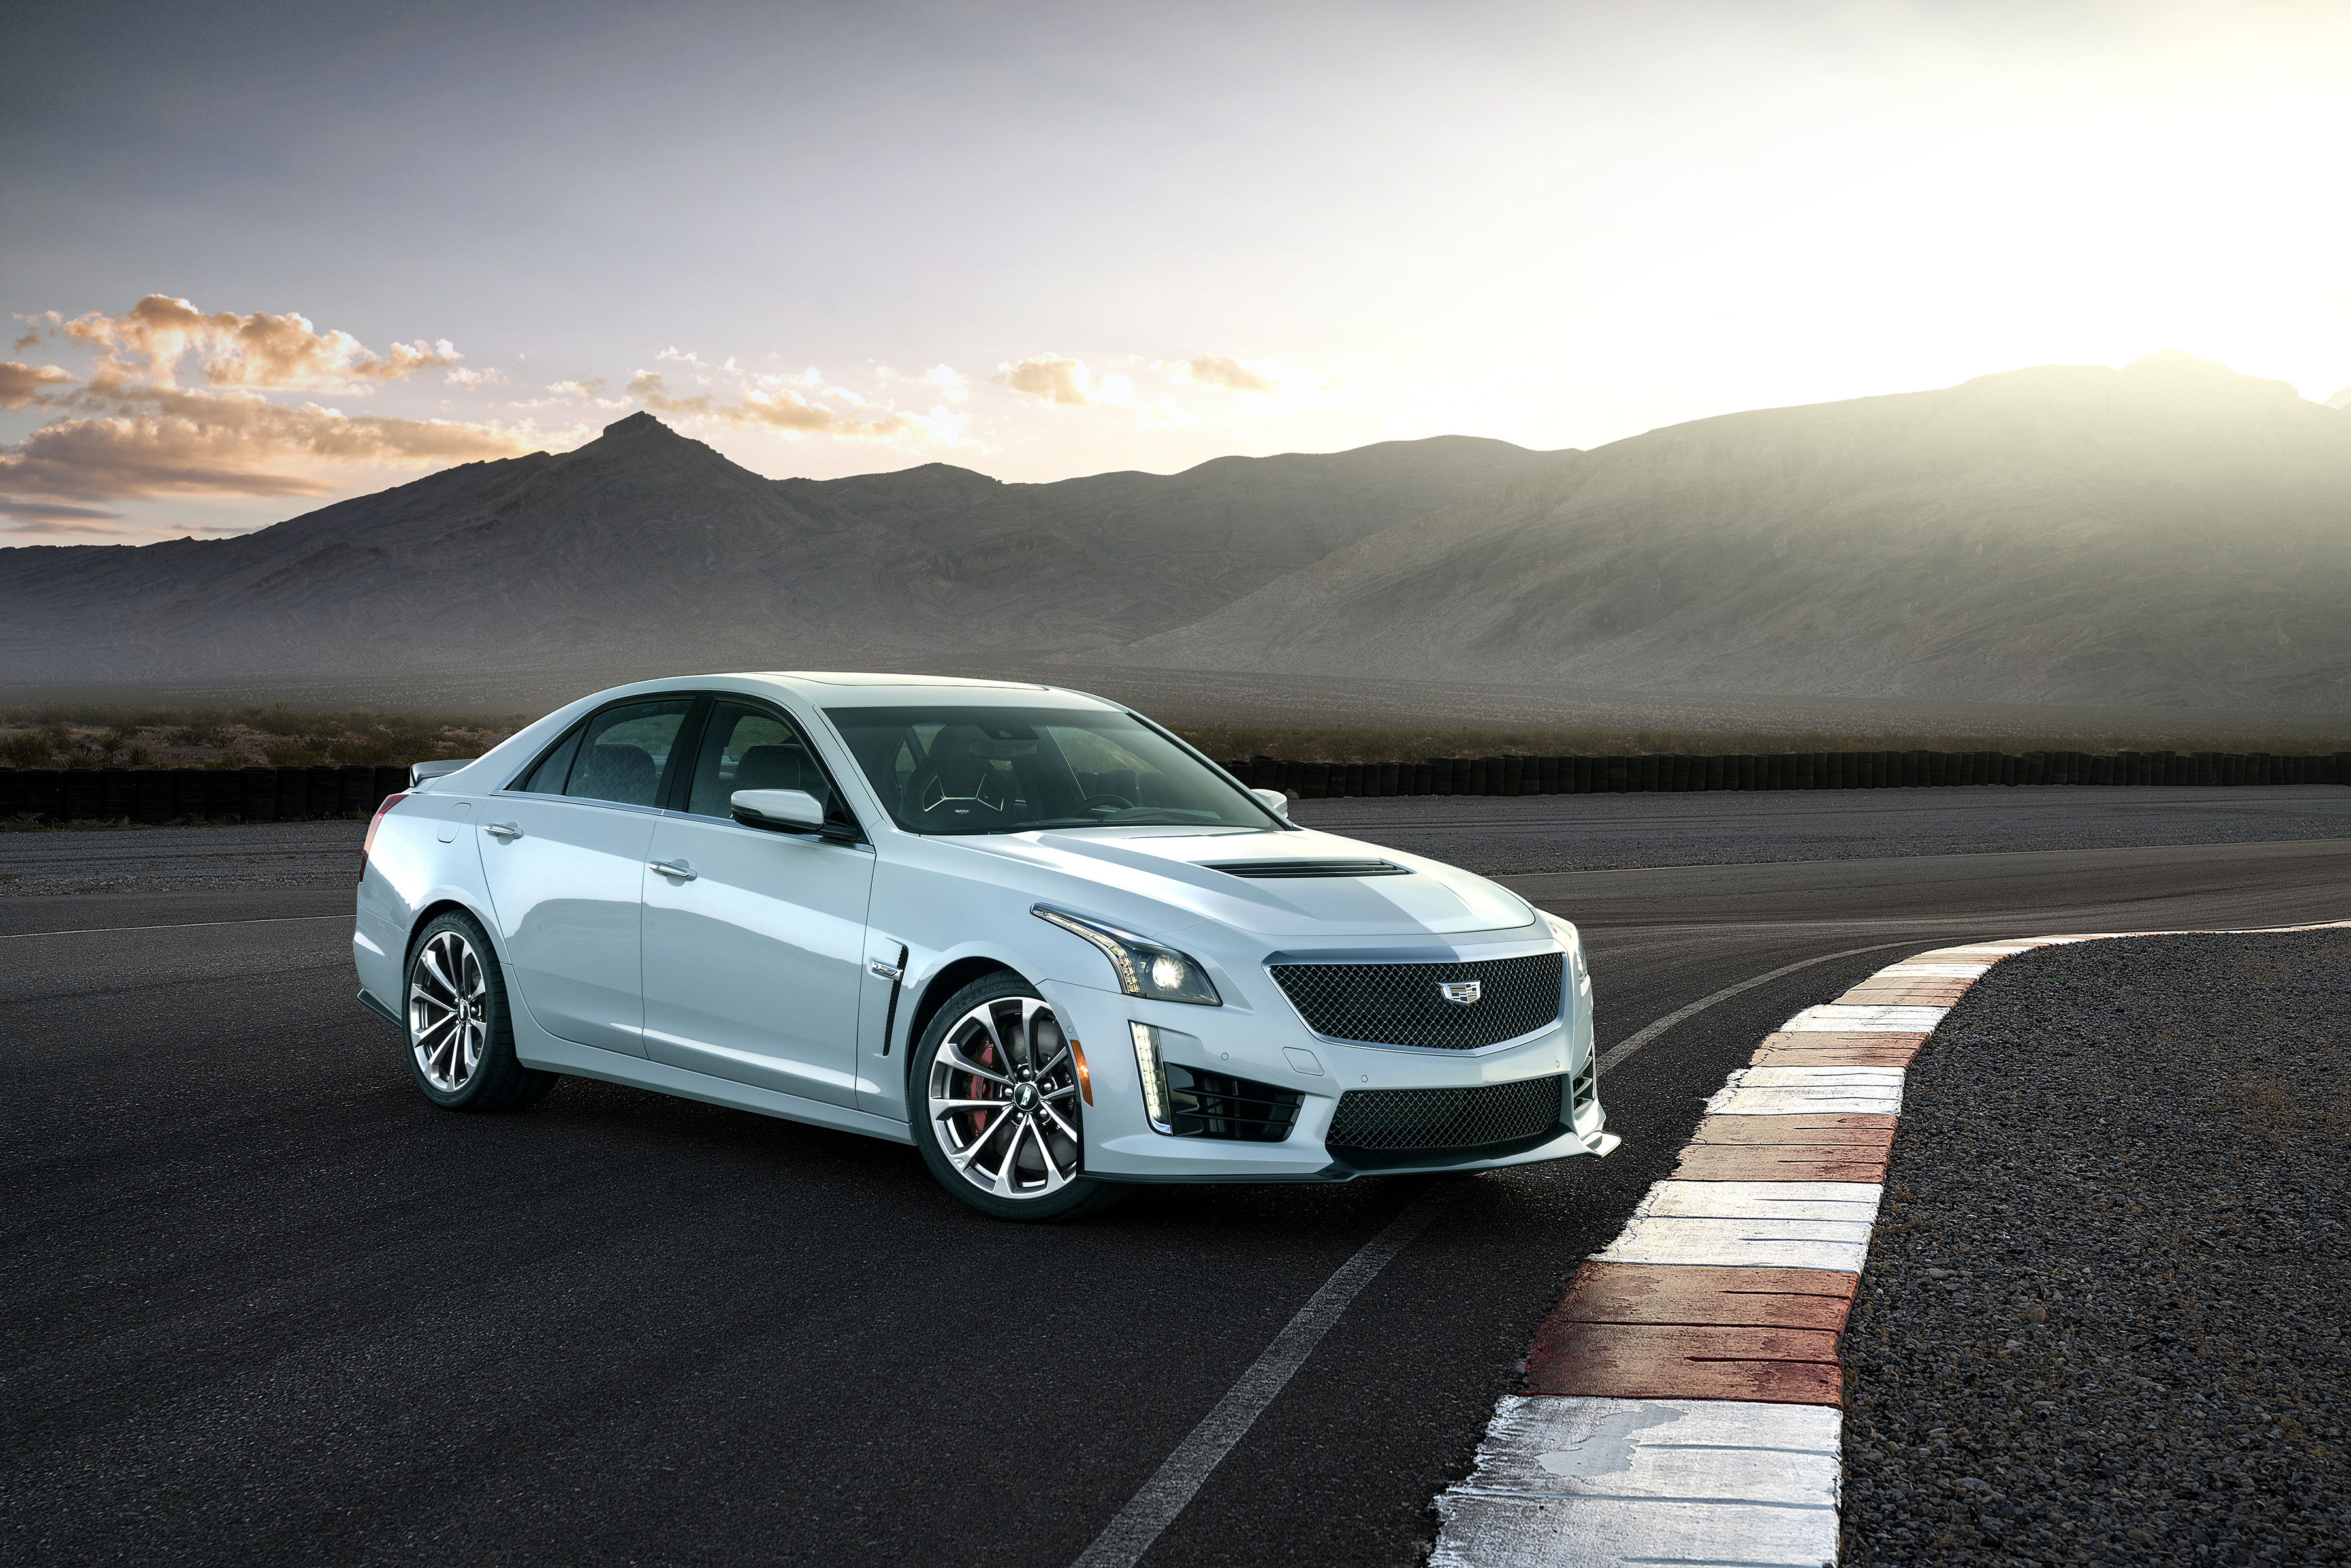 Cadillac Introduces the Limited Production 2018 Cadillac CTS-V Glacier Metallic Edition